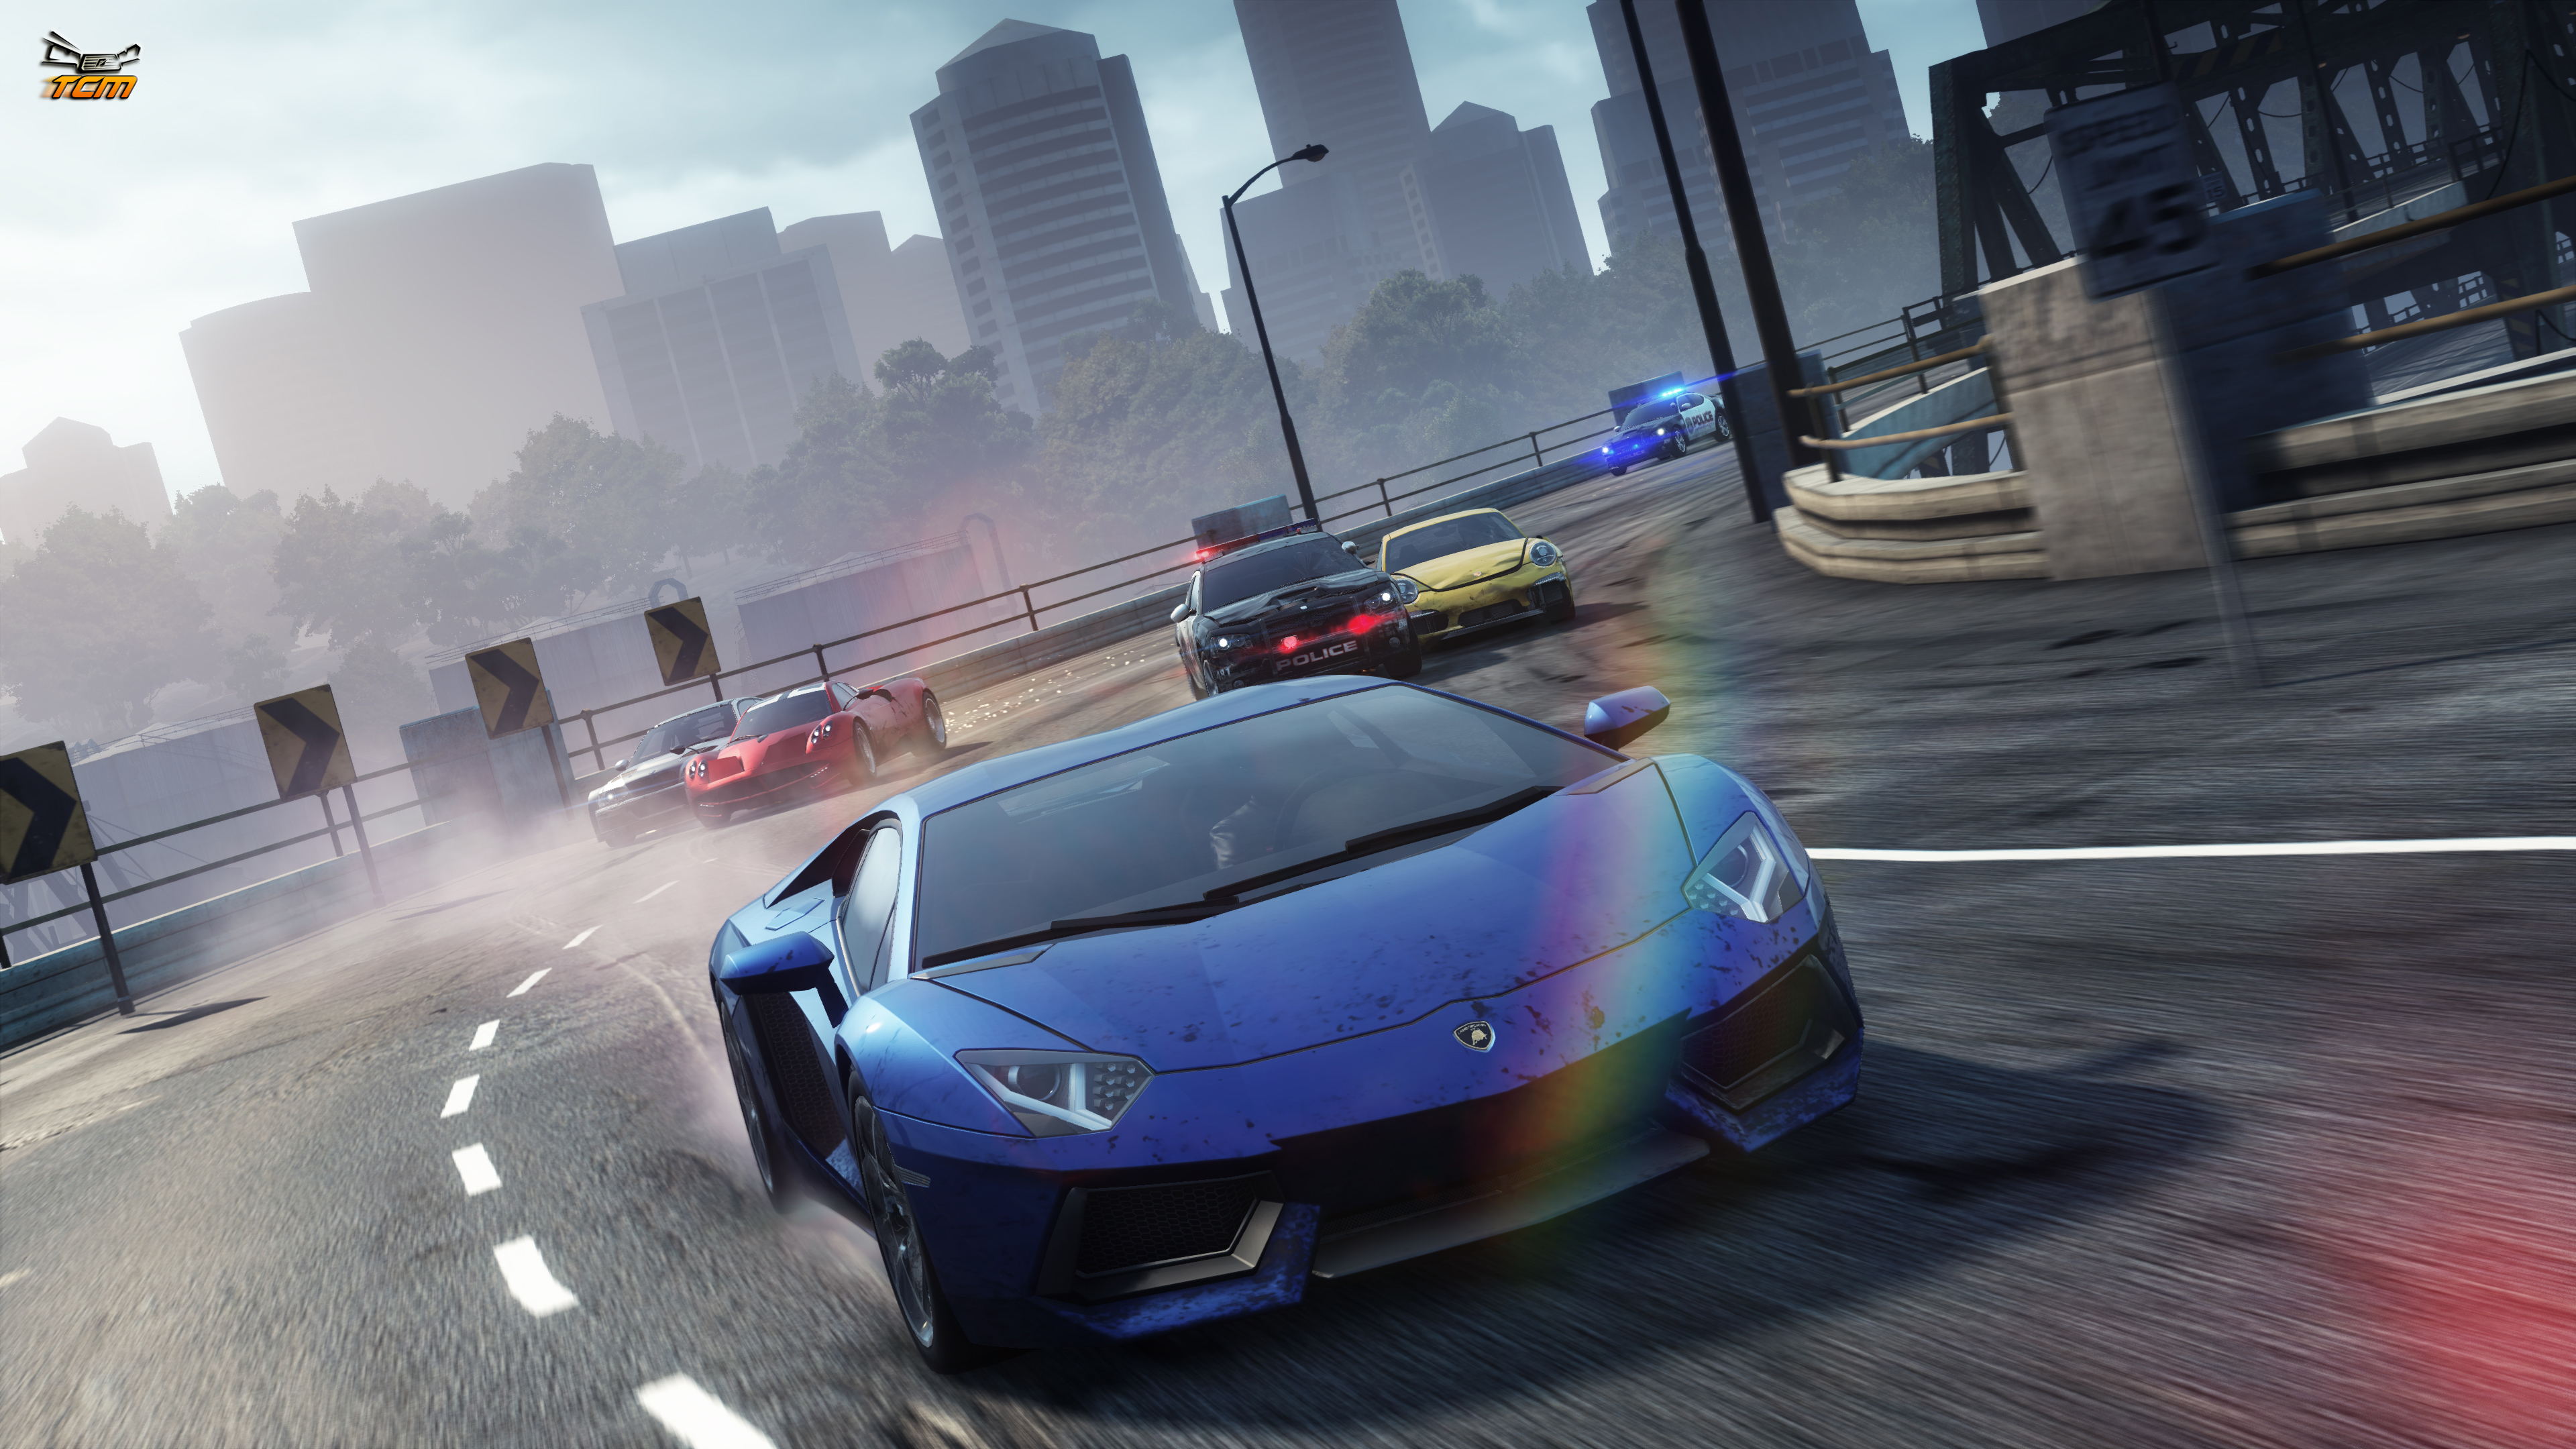 Need for speed most wanted Computer Wallpapers Desktop NFS